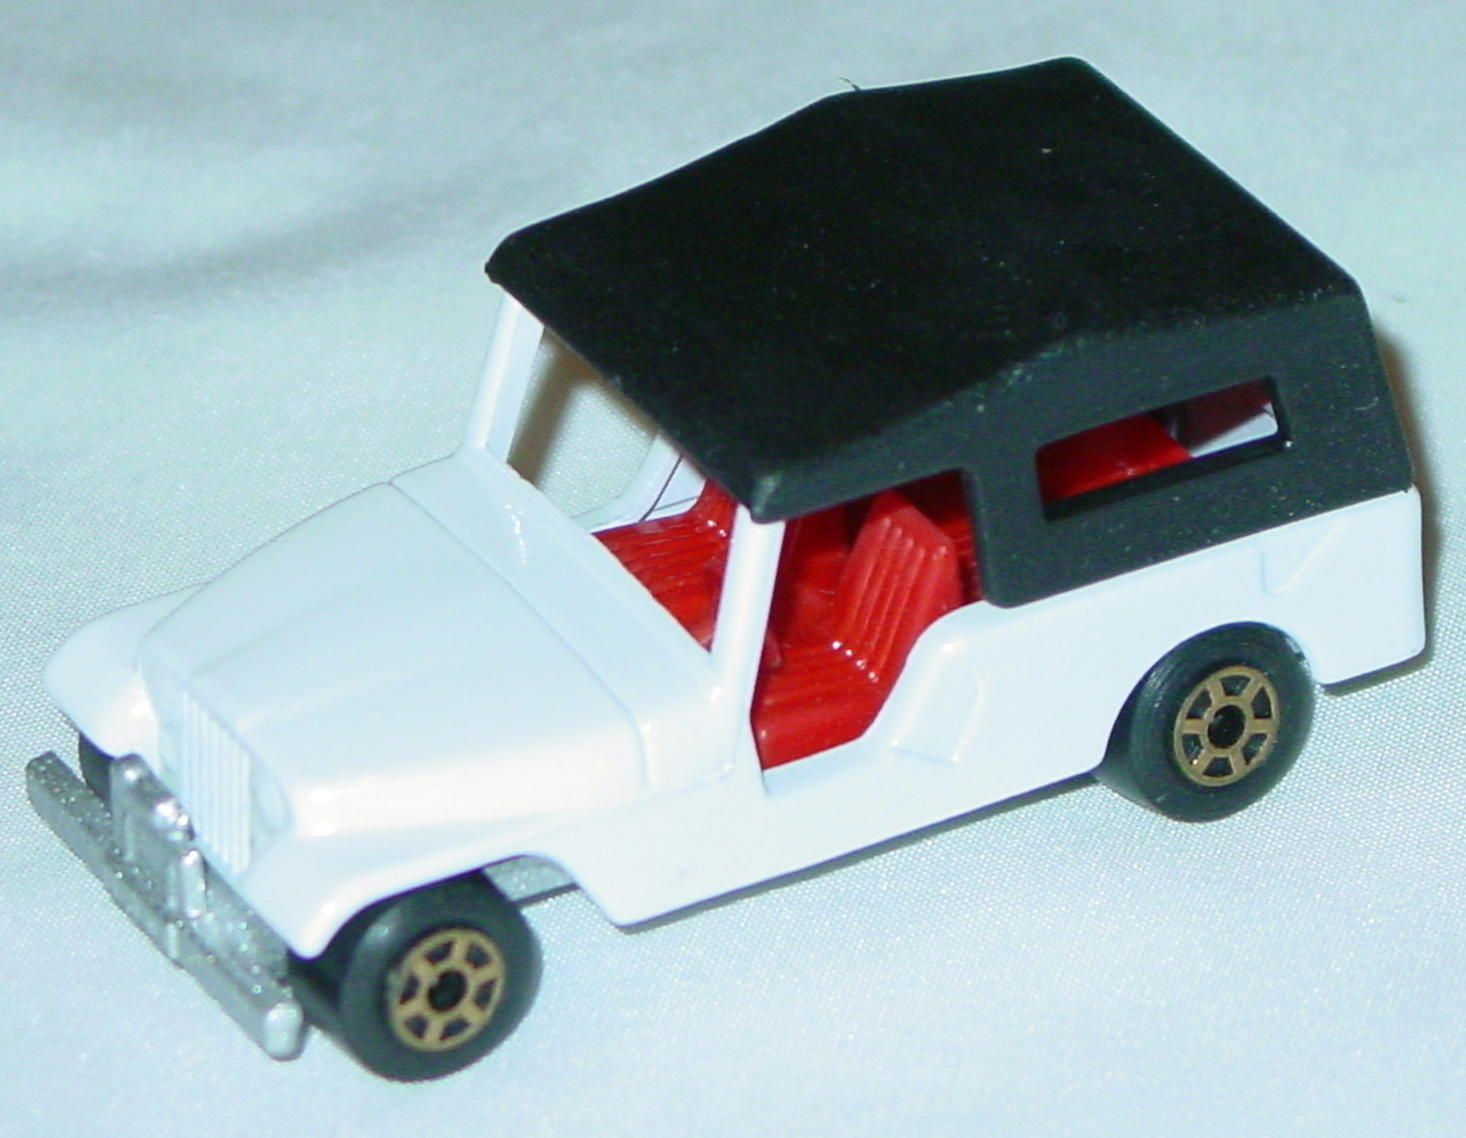 Hungarian 53 C 13 - CJ6 Jeep White red black roof met sil-grey gold 5-spoke